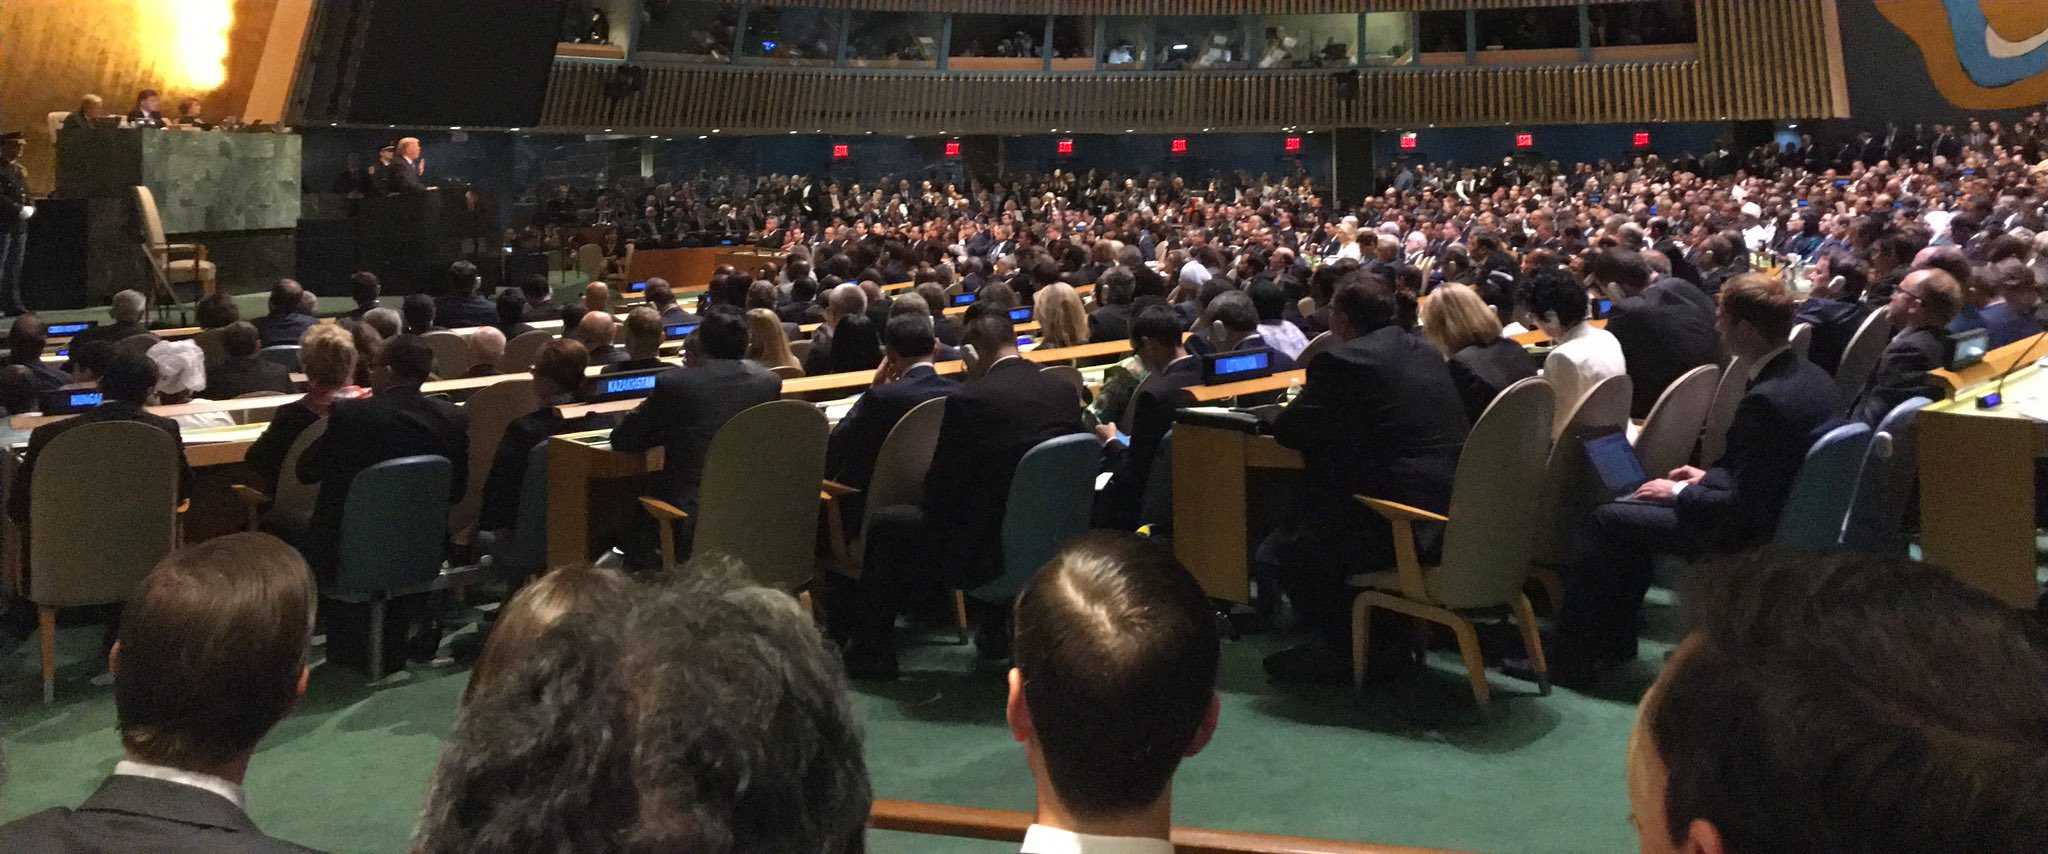 'If the righteous many do not confront the wicked few then evil will triumph' @POTUS at #UNGA https://t.co/K6rC9Ce6Bk